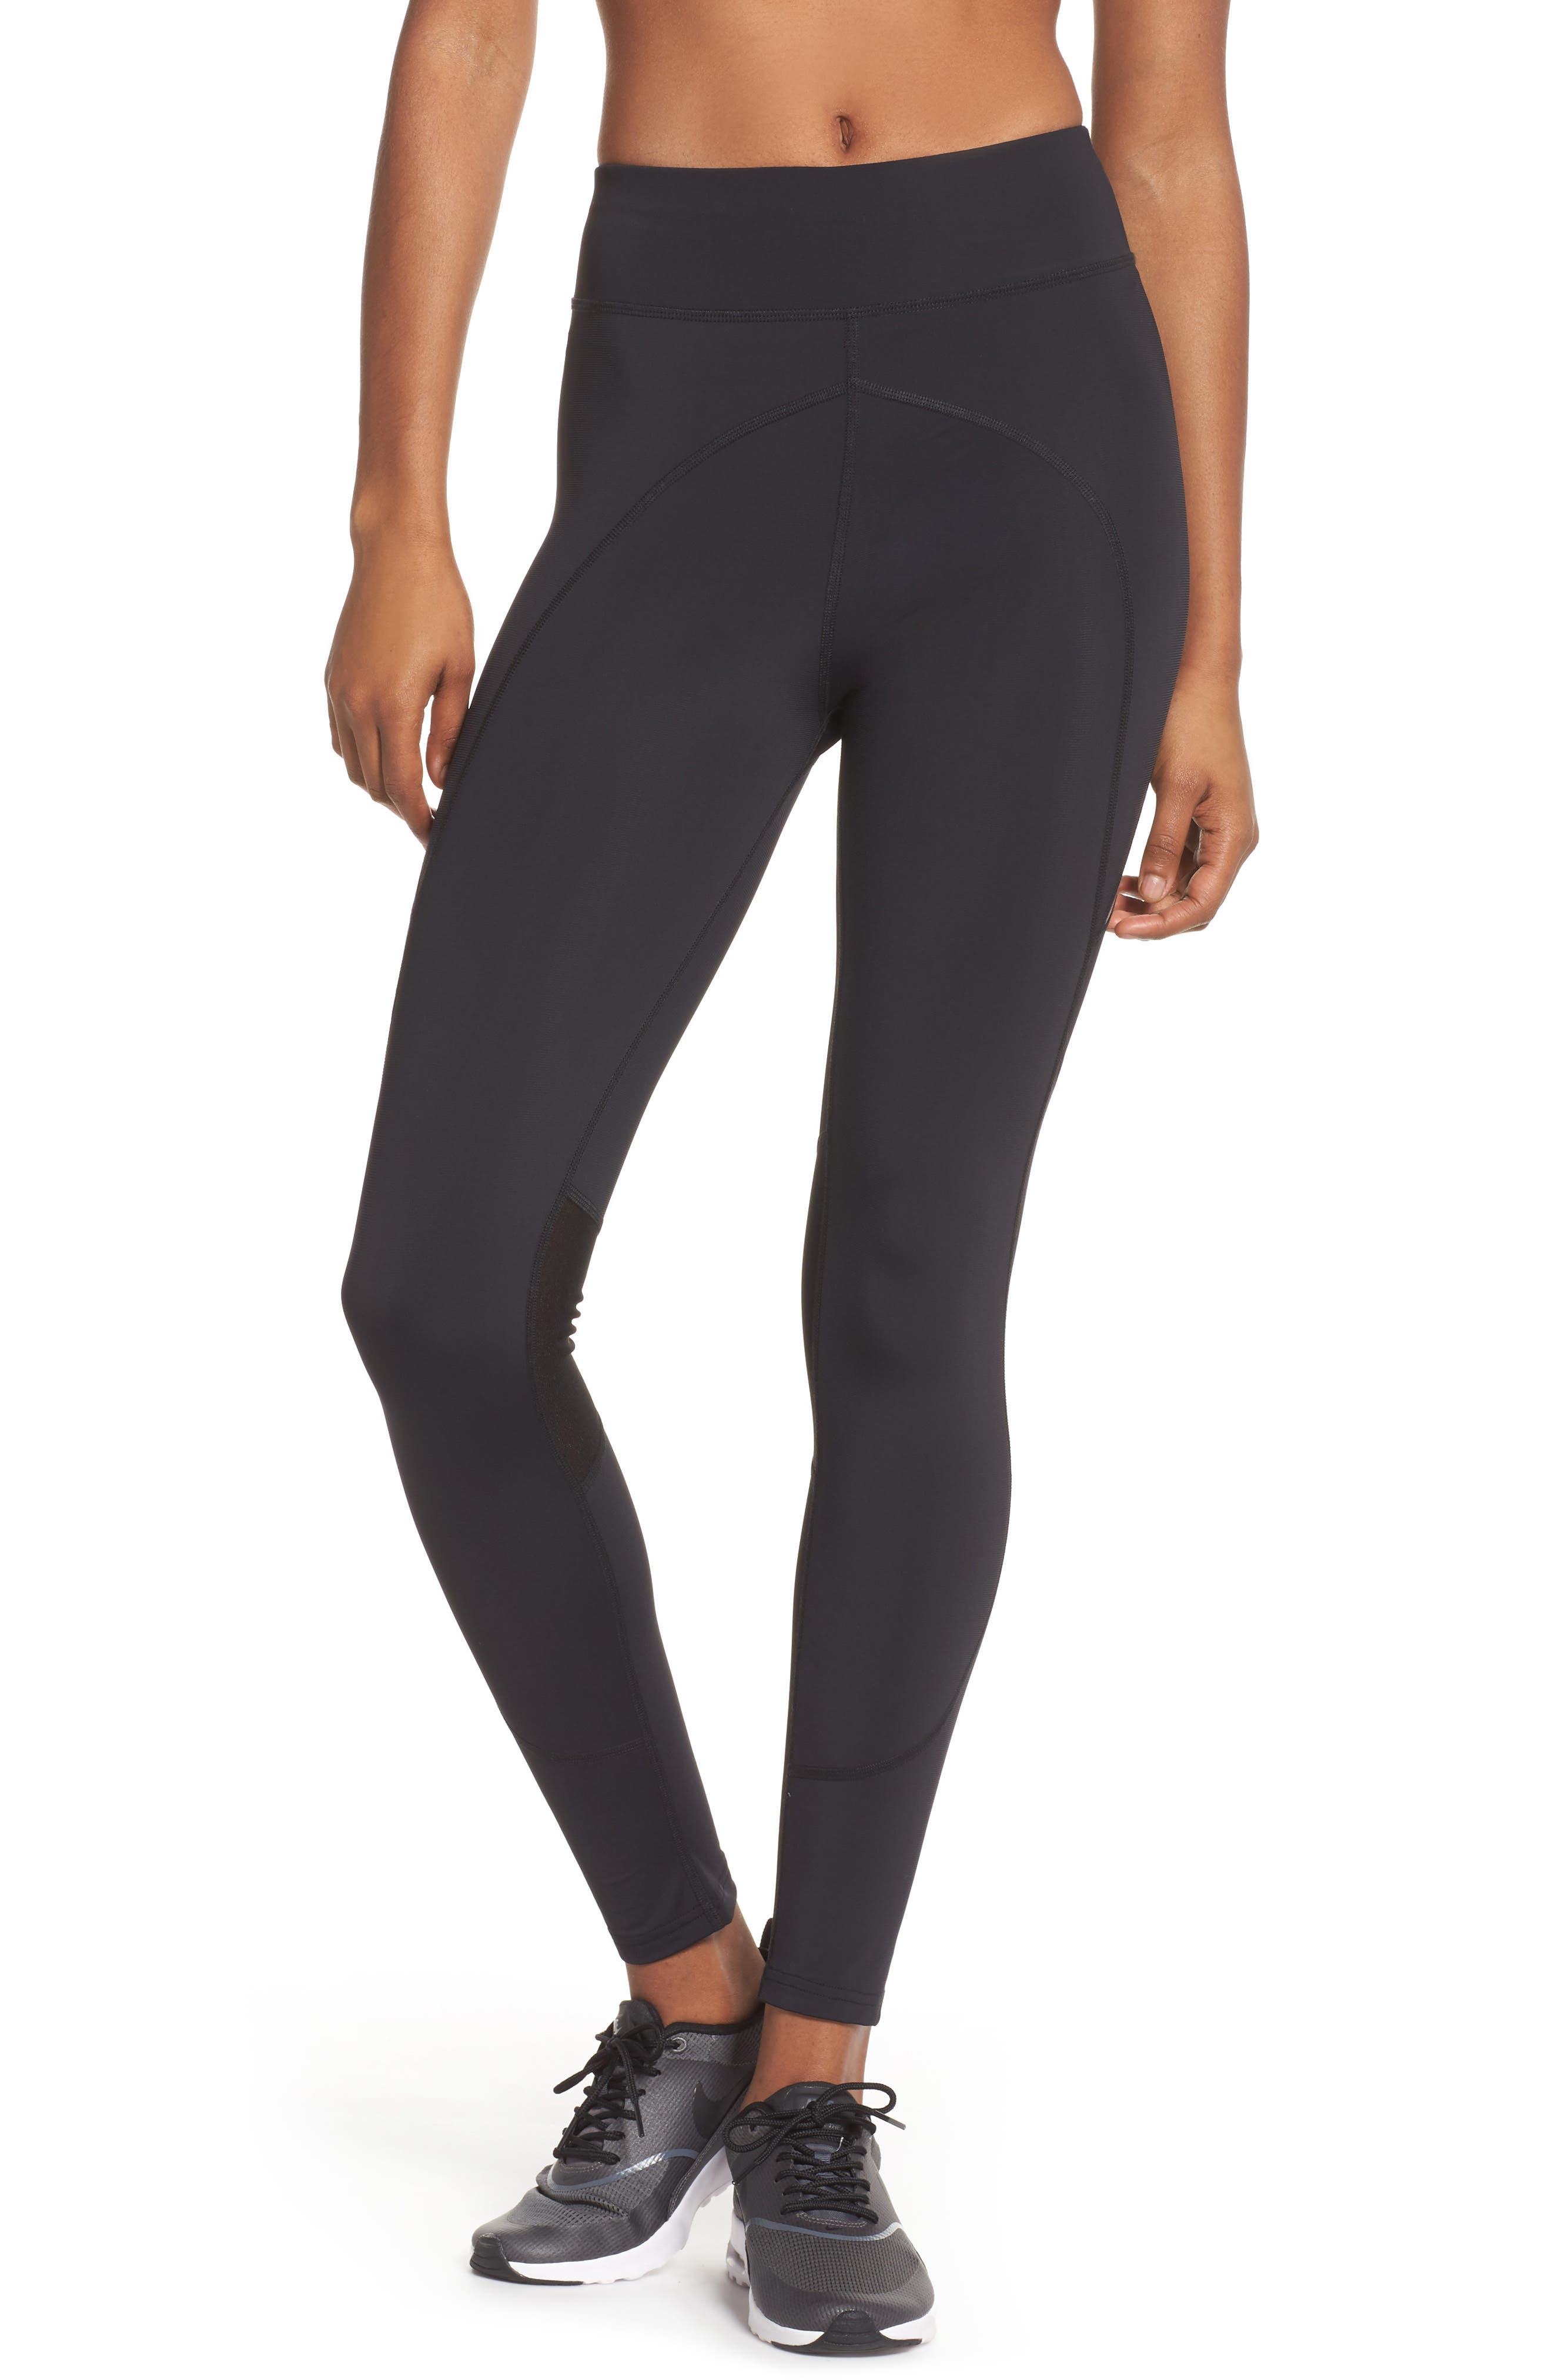 BoomBoom Athletica High Compression Sport Leggings